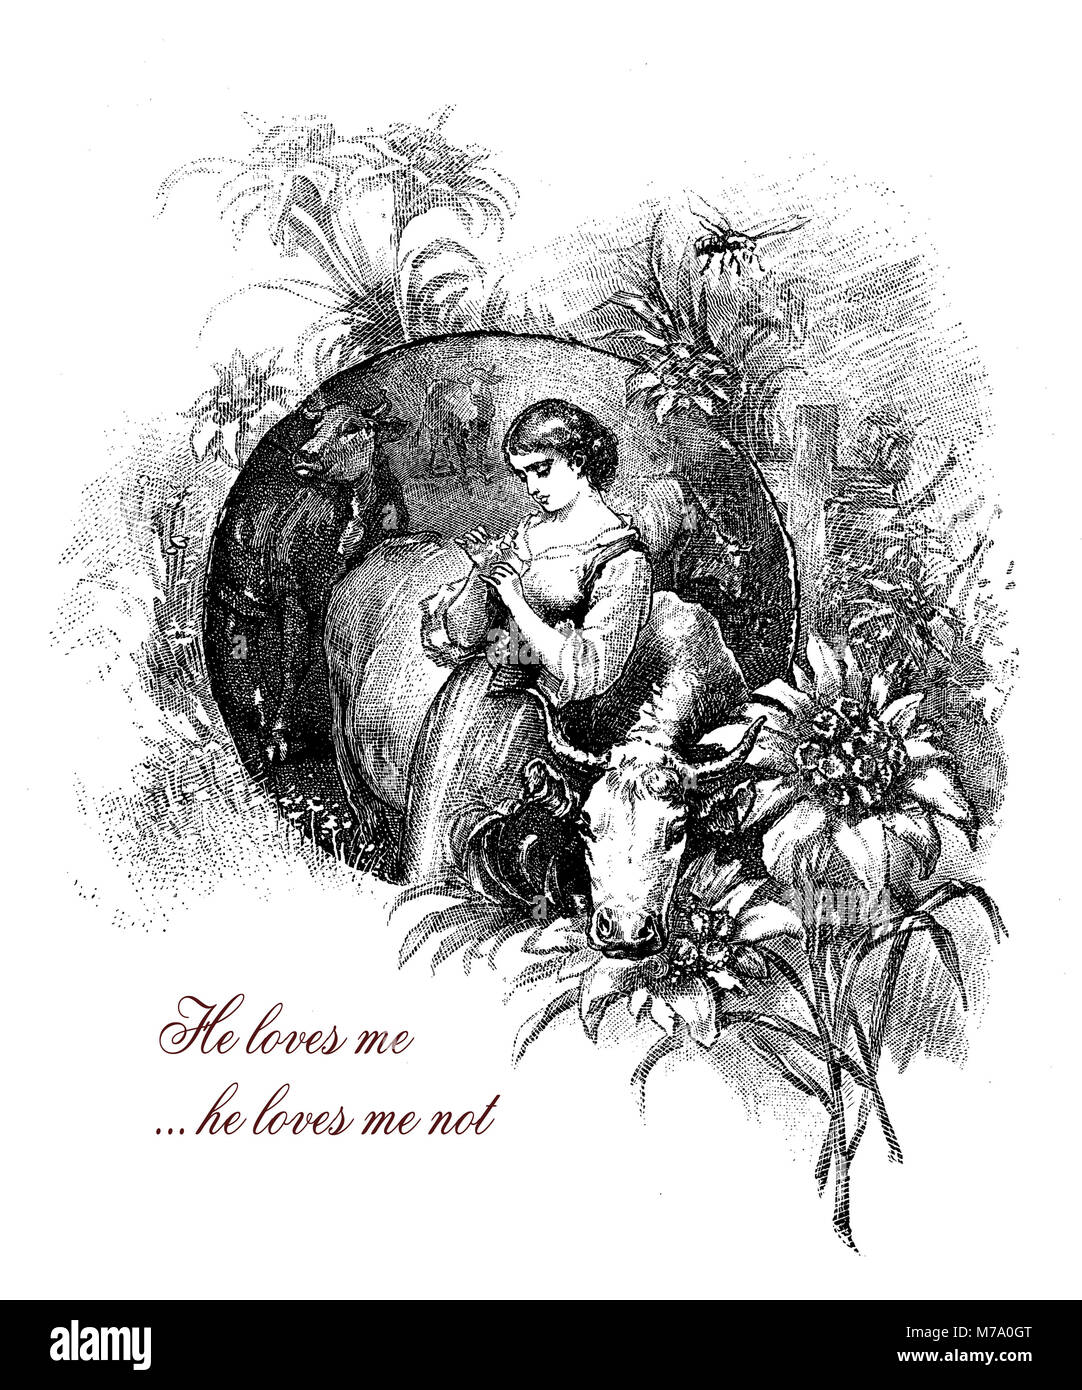 He loves me...he loves me not, girl with edelweiss, romantic vintage engraving - Stock Image